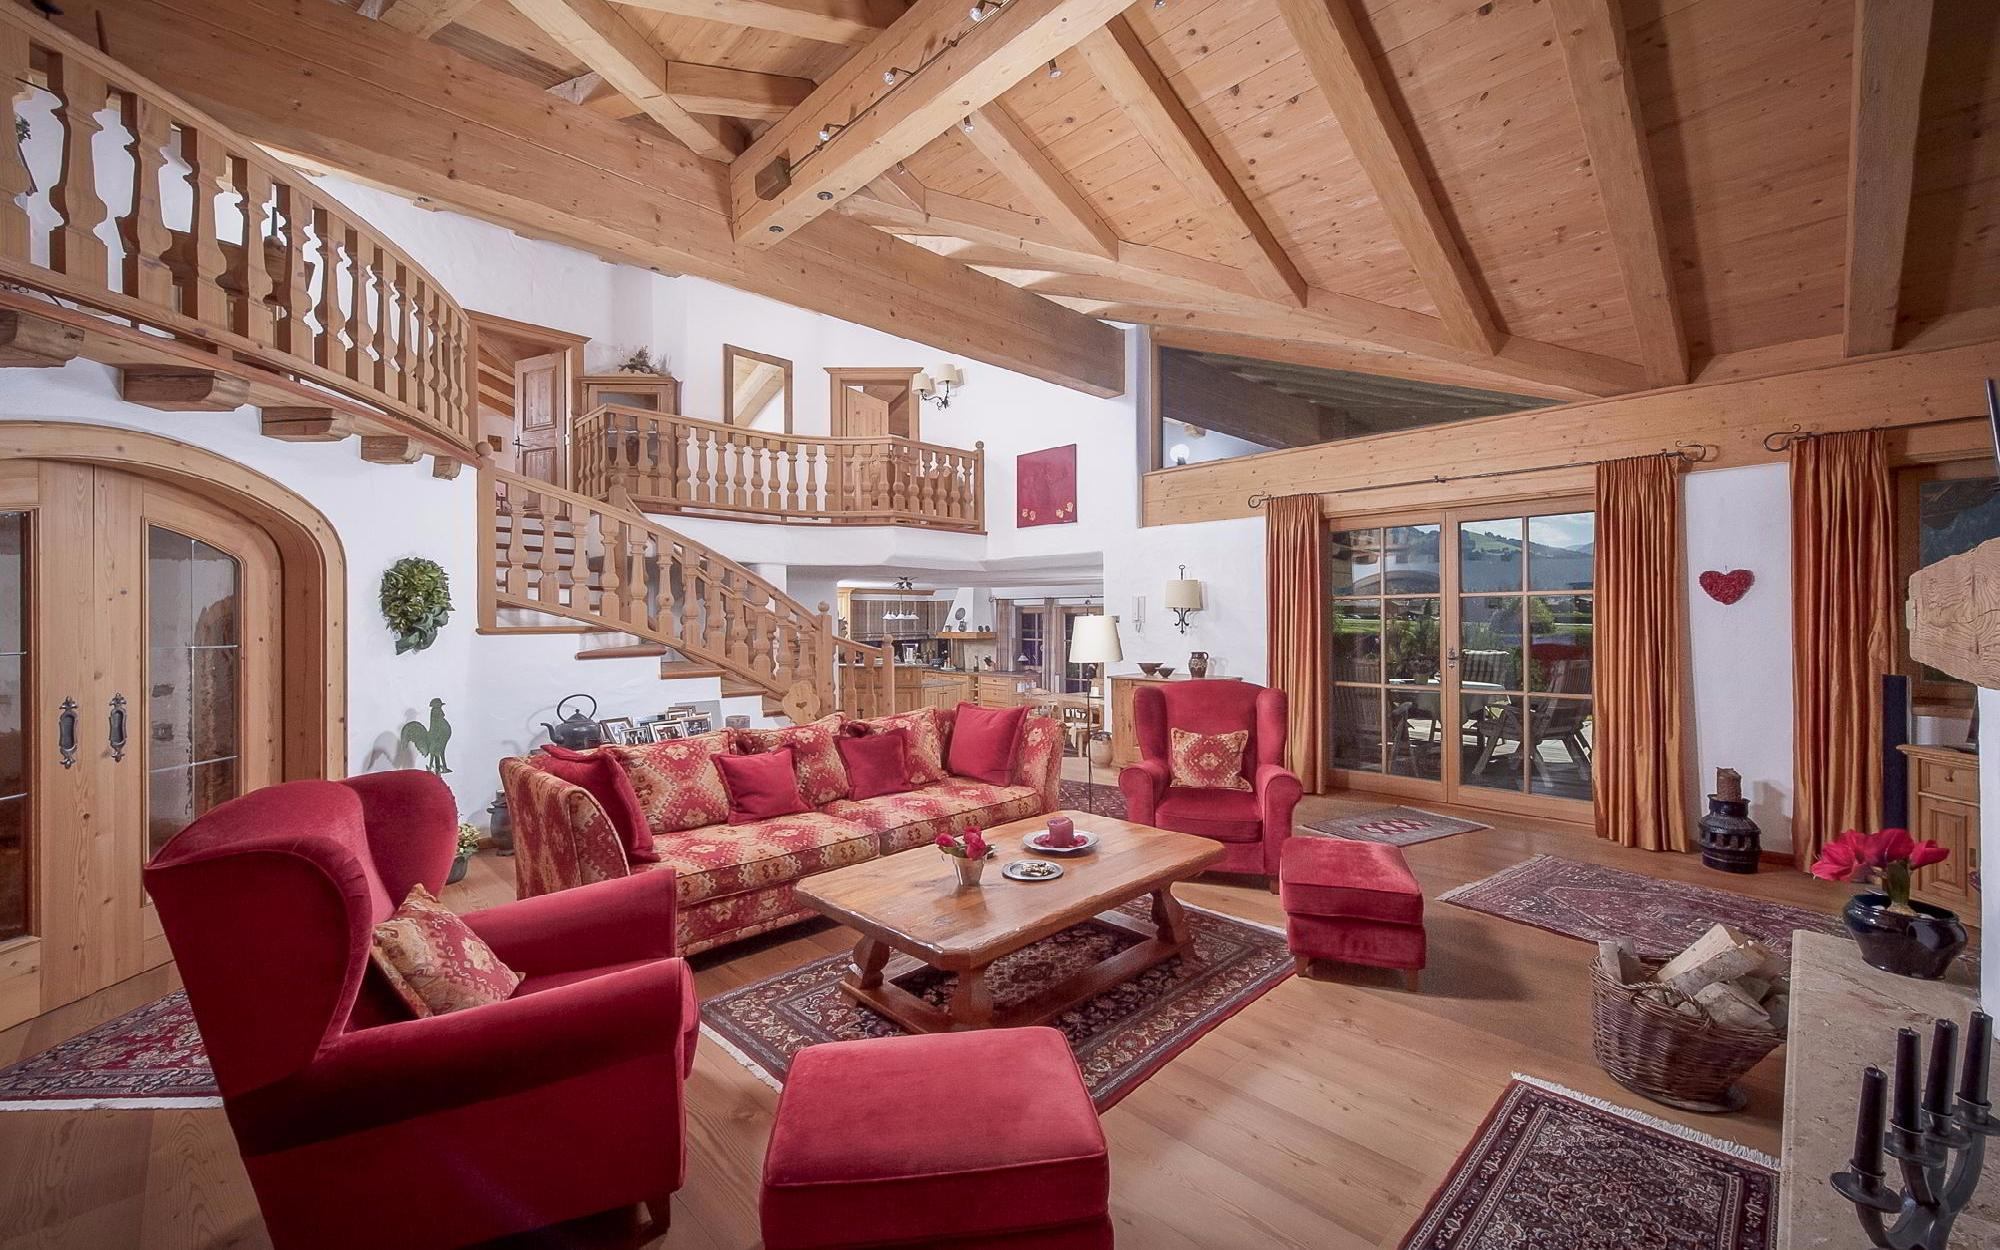 Quality country house in Tyrolean style close to Kitzbuehel For Sale - Austria - Tirol